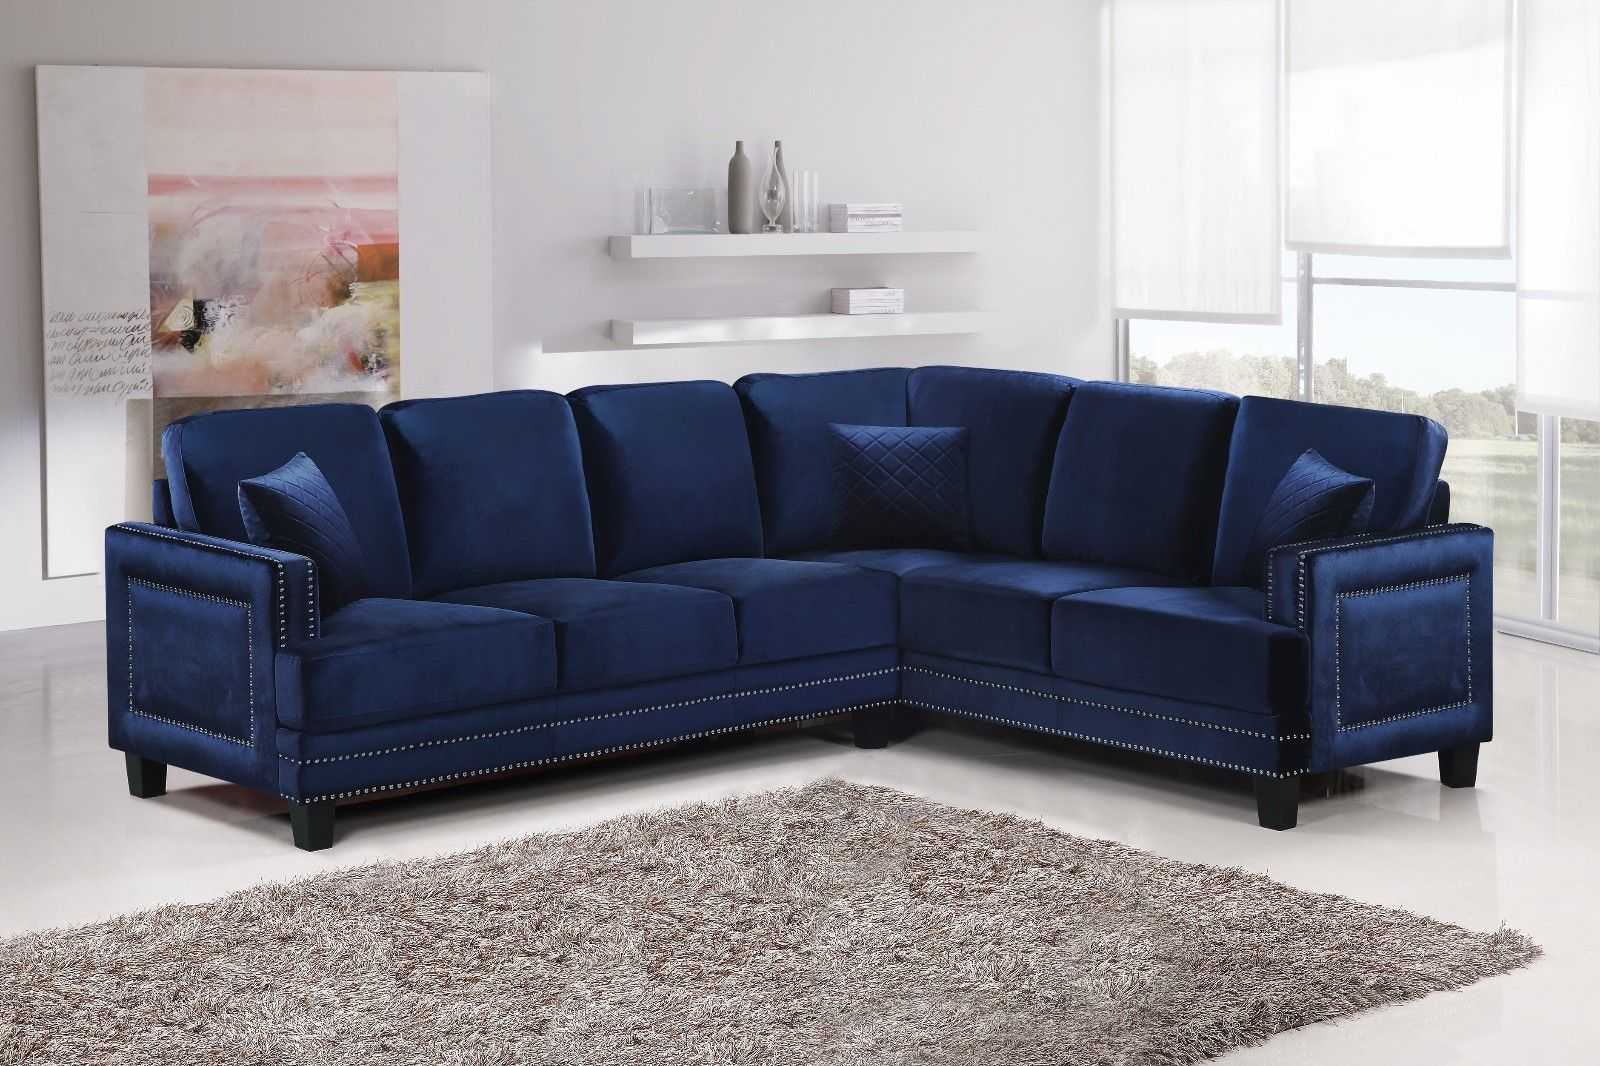 Meridian 655 Navy Velvet Sectional Sofa Left Hand Facing Contemporary Style